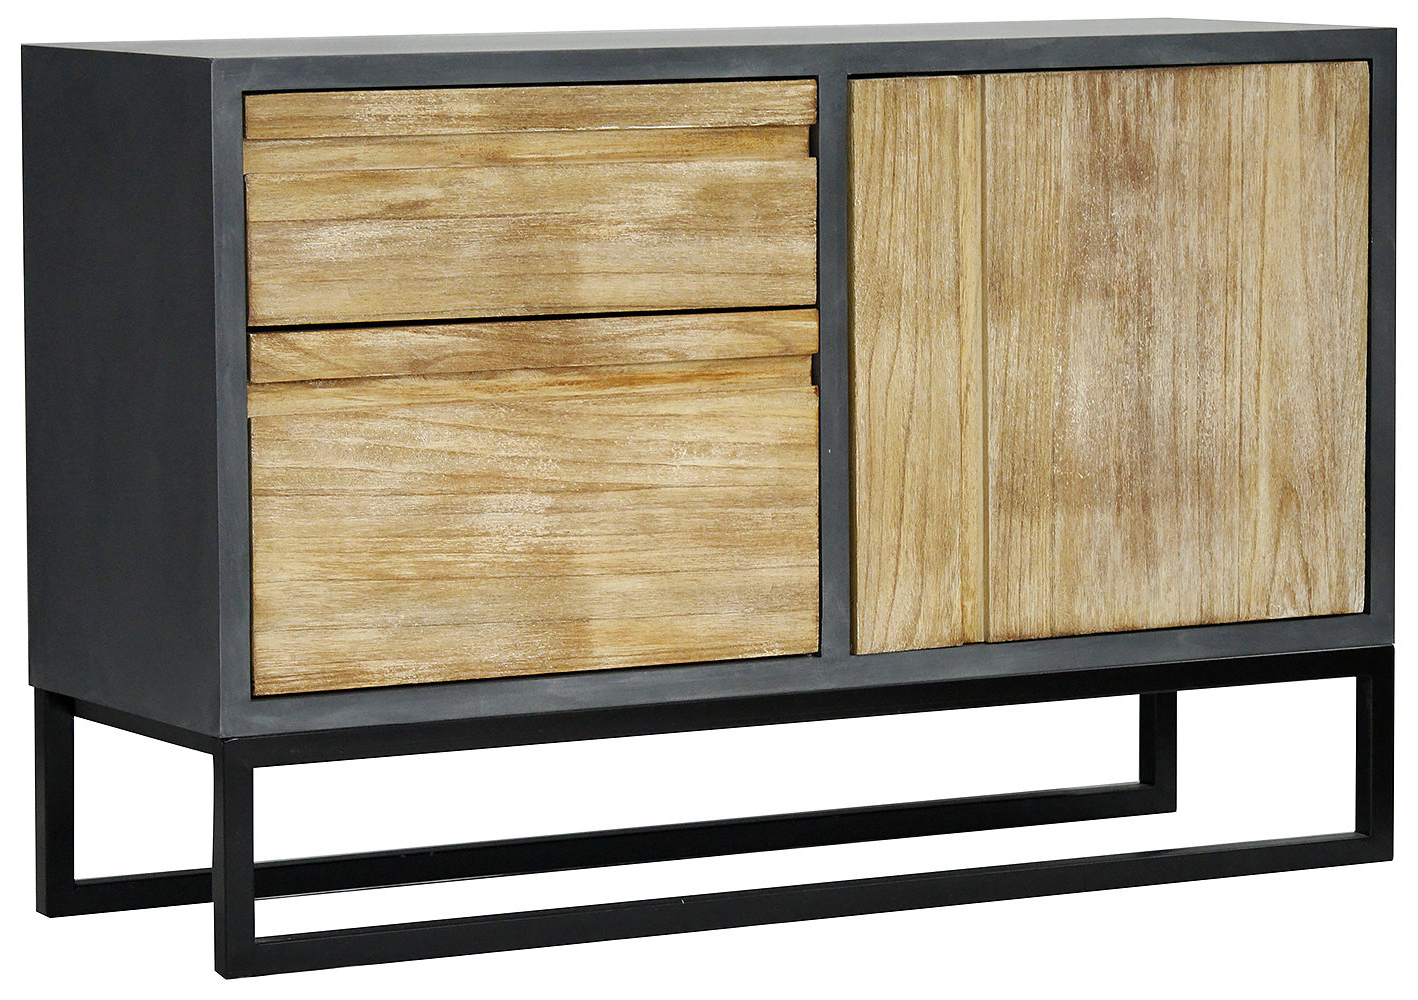 Modern Trent Austin Design Sideboards + Buffets | Allmodern For Casolino Sideboards (View 16 of 20)